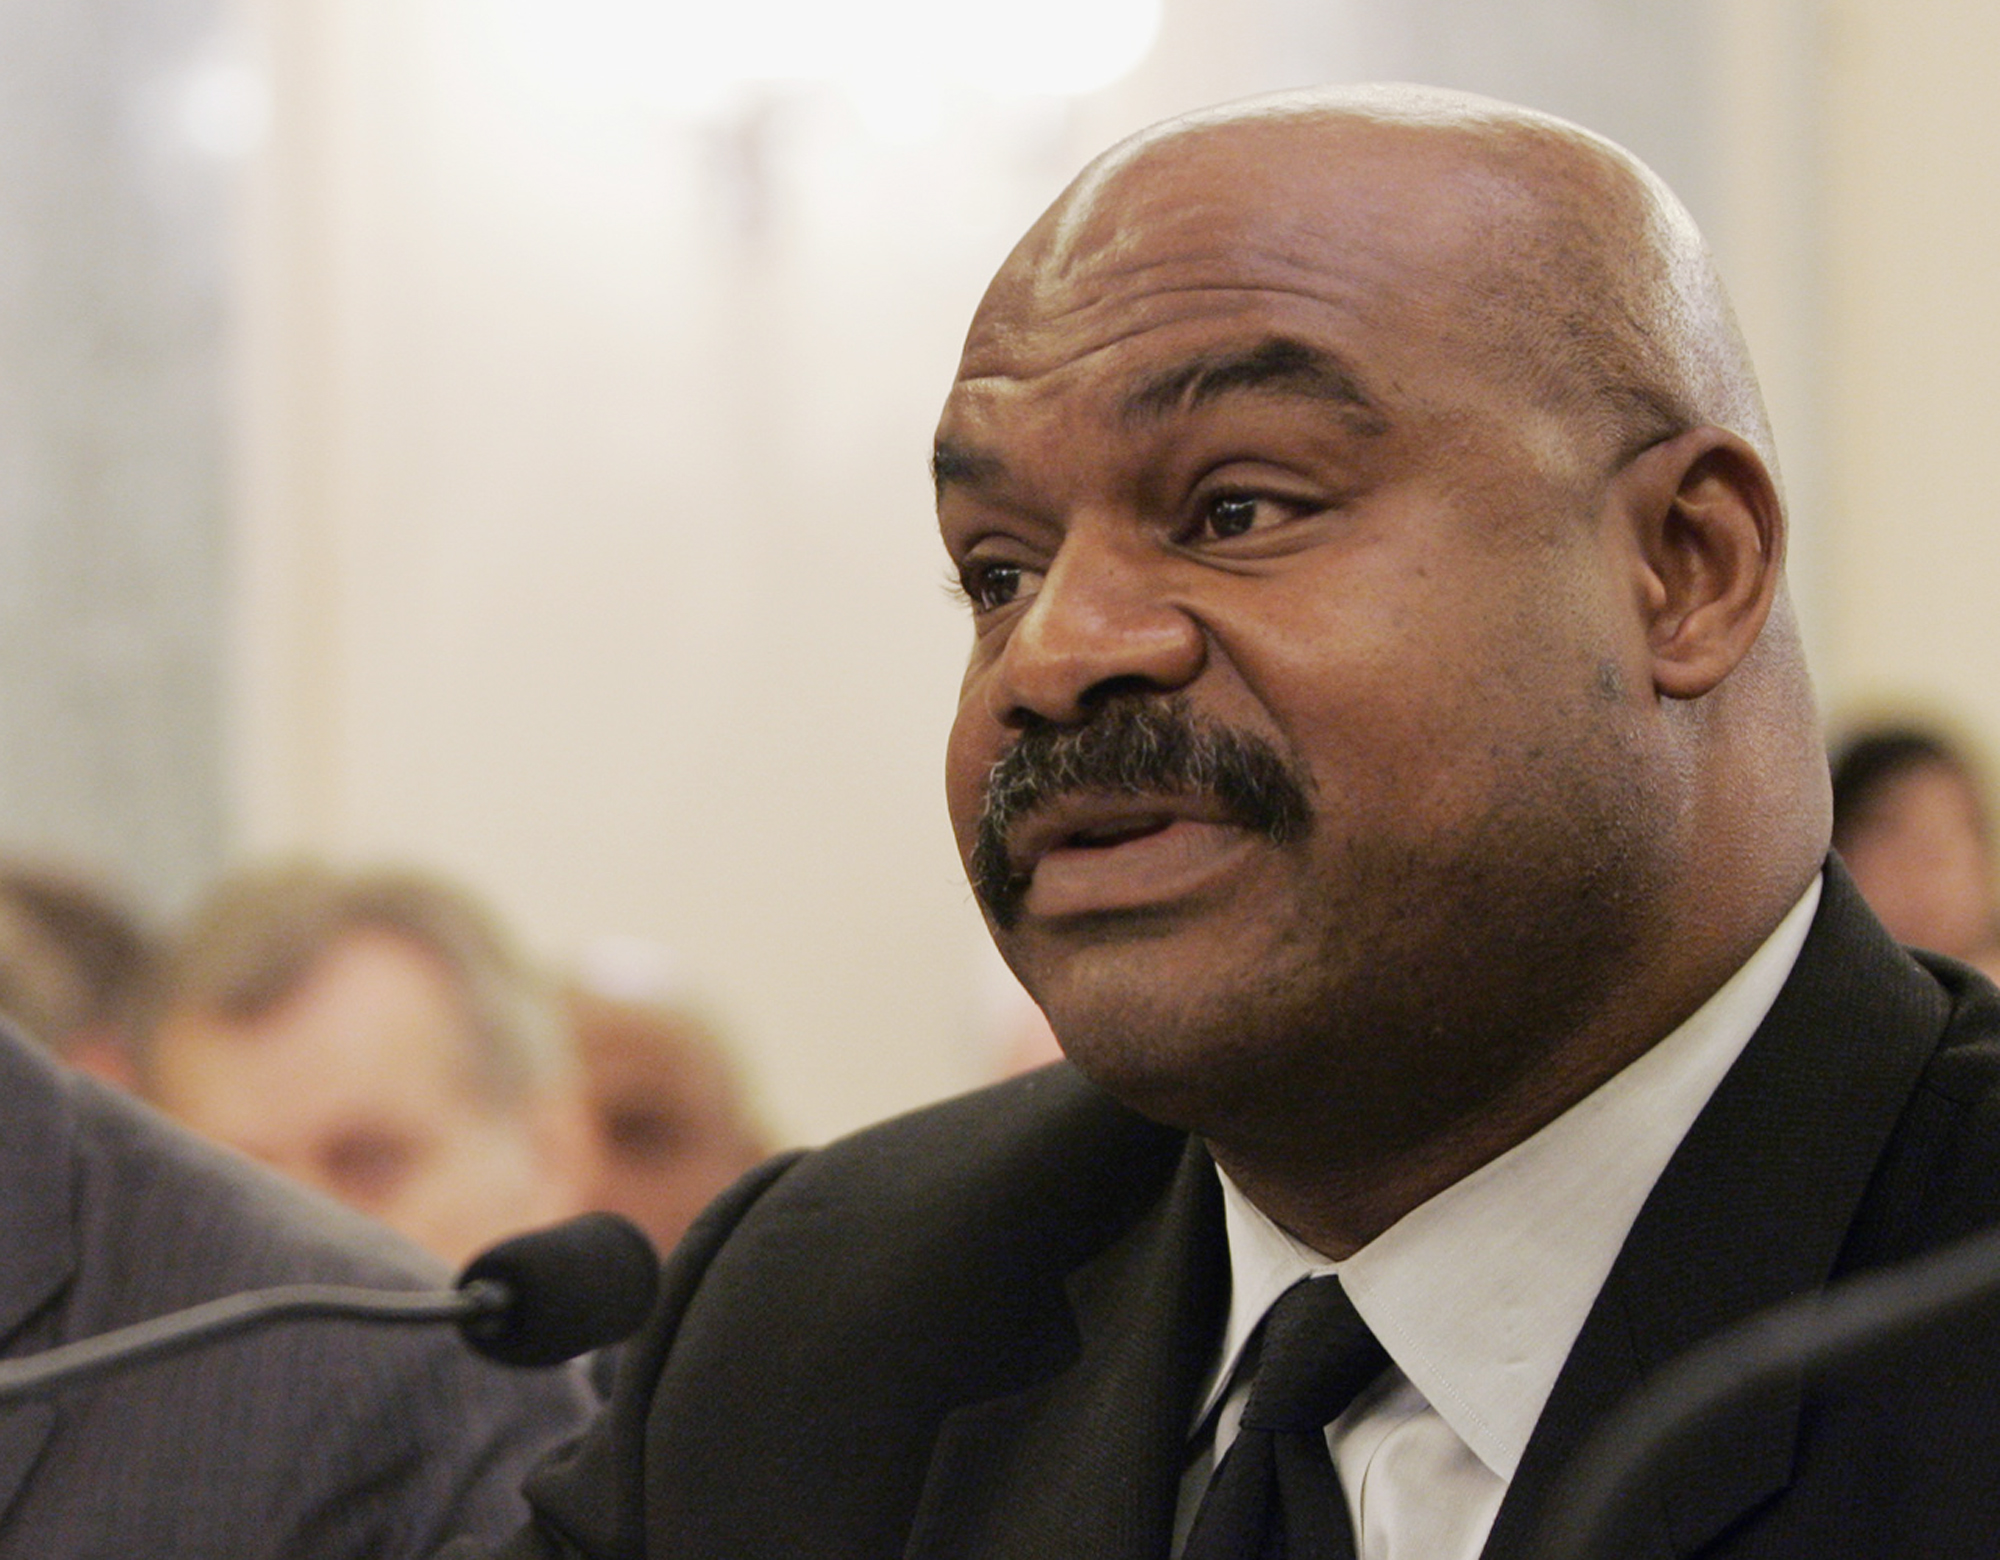 FILE - In this Sept. 18, 2007 file photo, former Chicago Bears safety Dave Duerson, a trustee for the Burt Bell/Pete Rozell NFL Player Retirement Plan, testifies on Capitol Hill in Washington. The family of the late NFL safety plans to appeal terms of thi